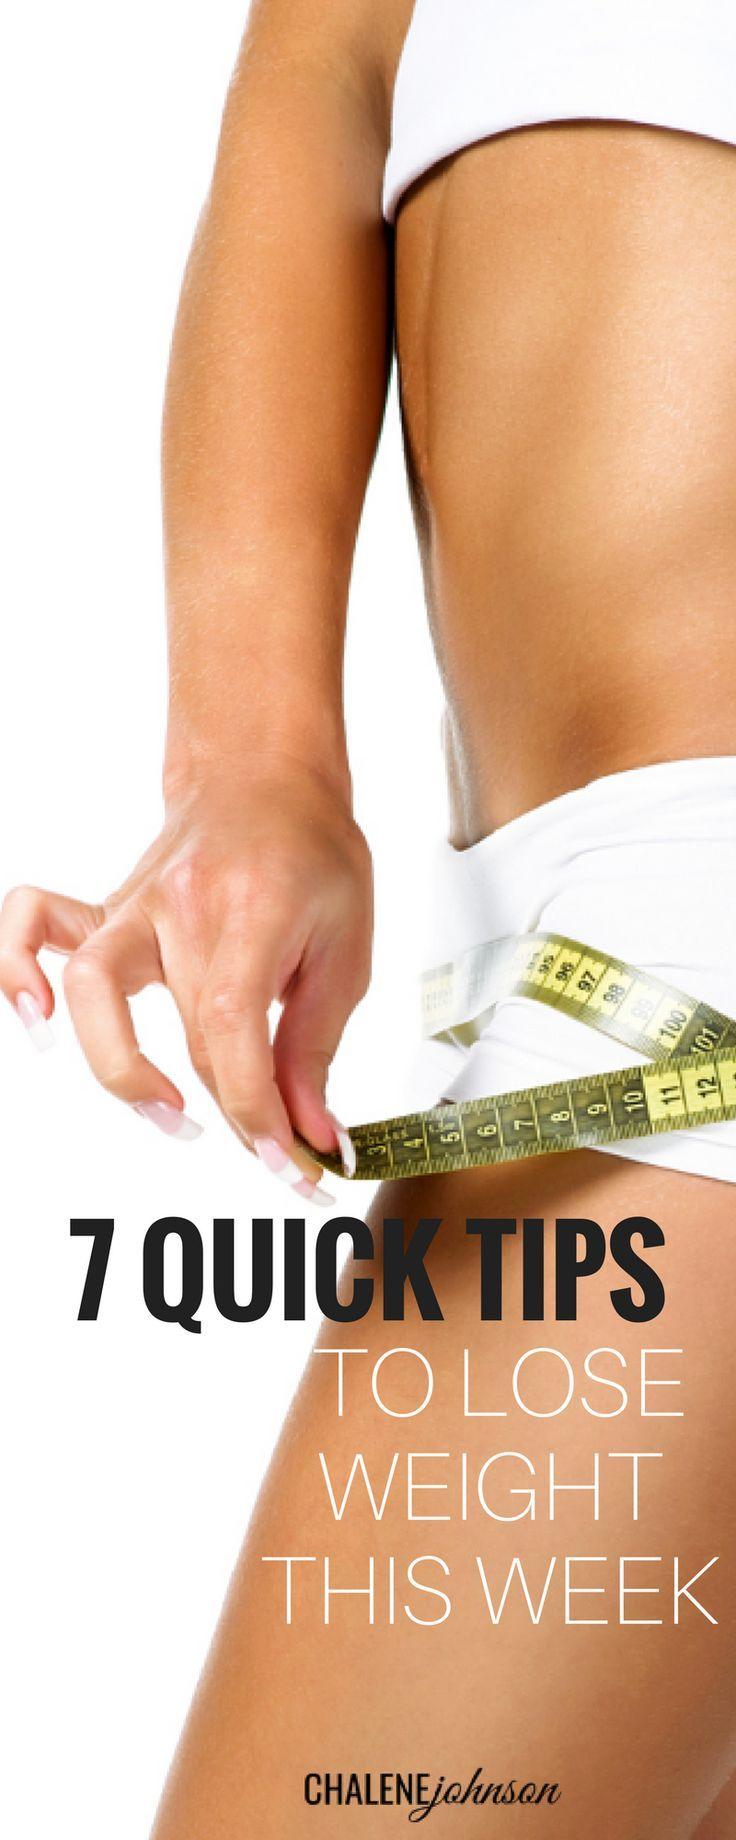 Weight loss diets healthy image 5